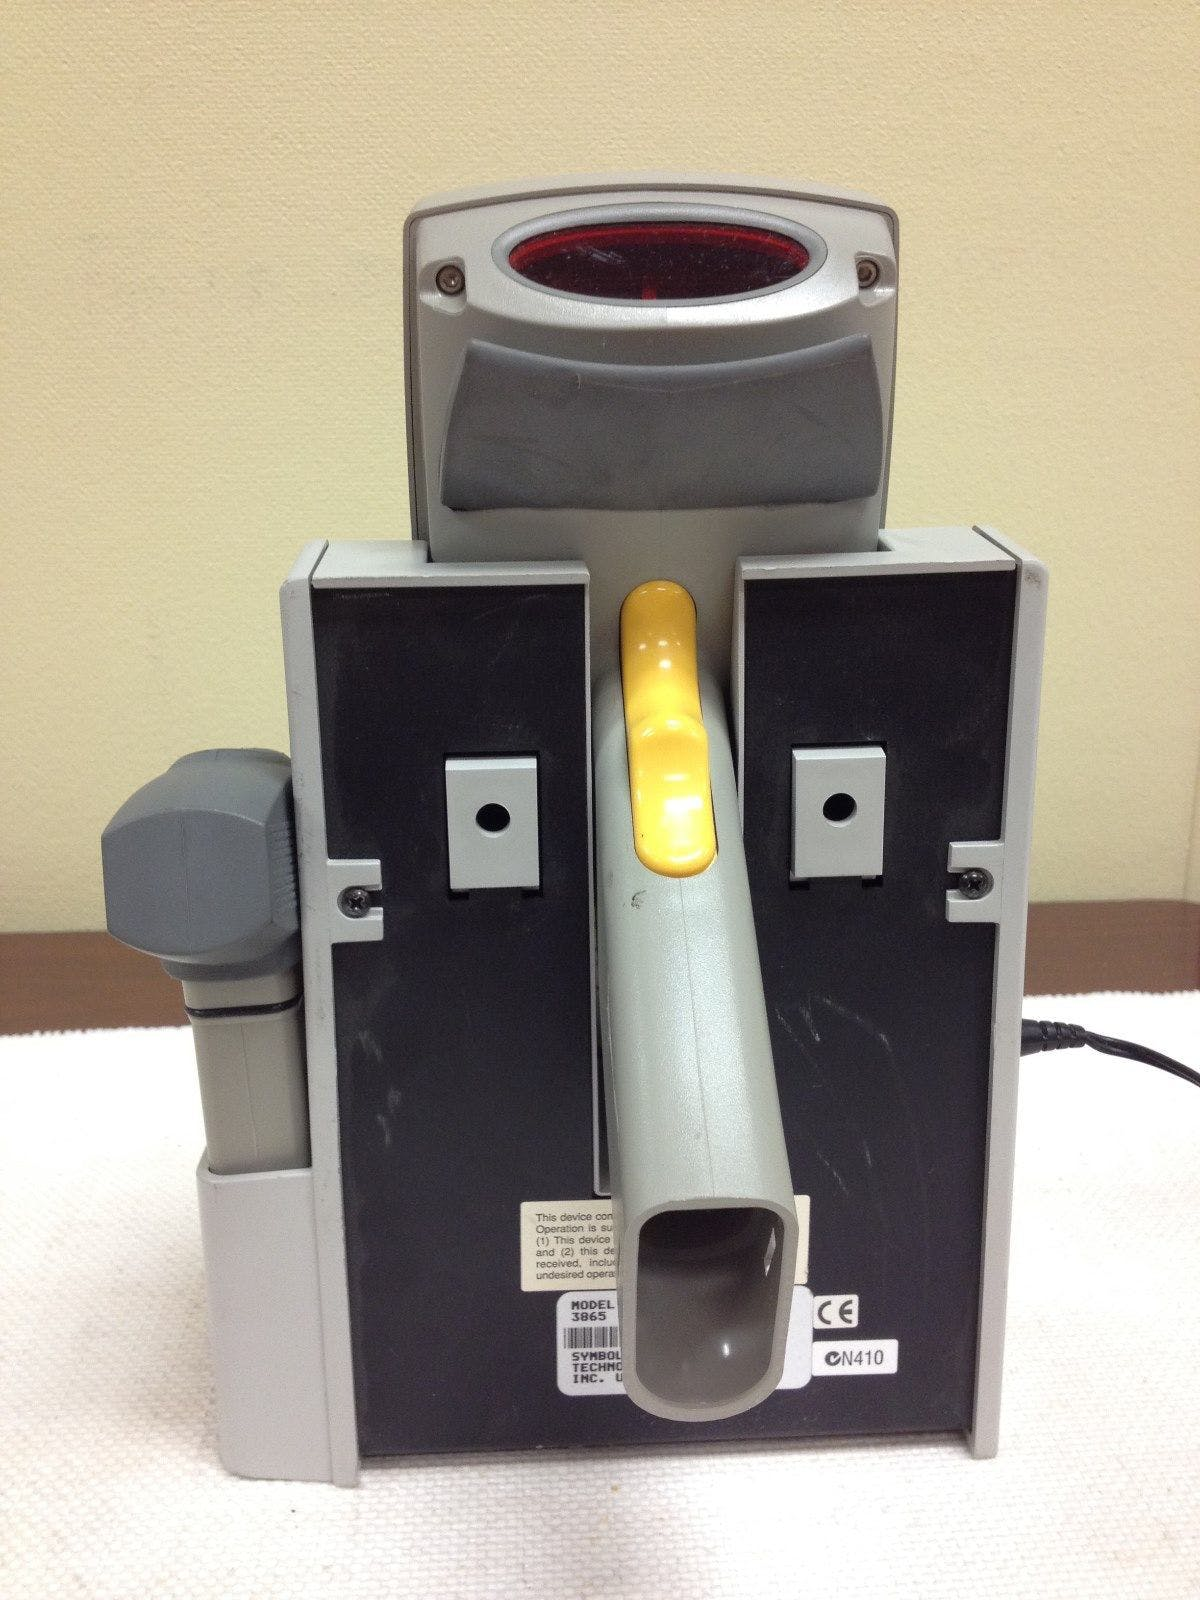 Symbol PDT6800-NOS64000 with Battery and Charging Station - sold by W. H. Cooke & Co., Inc.